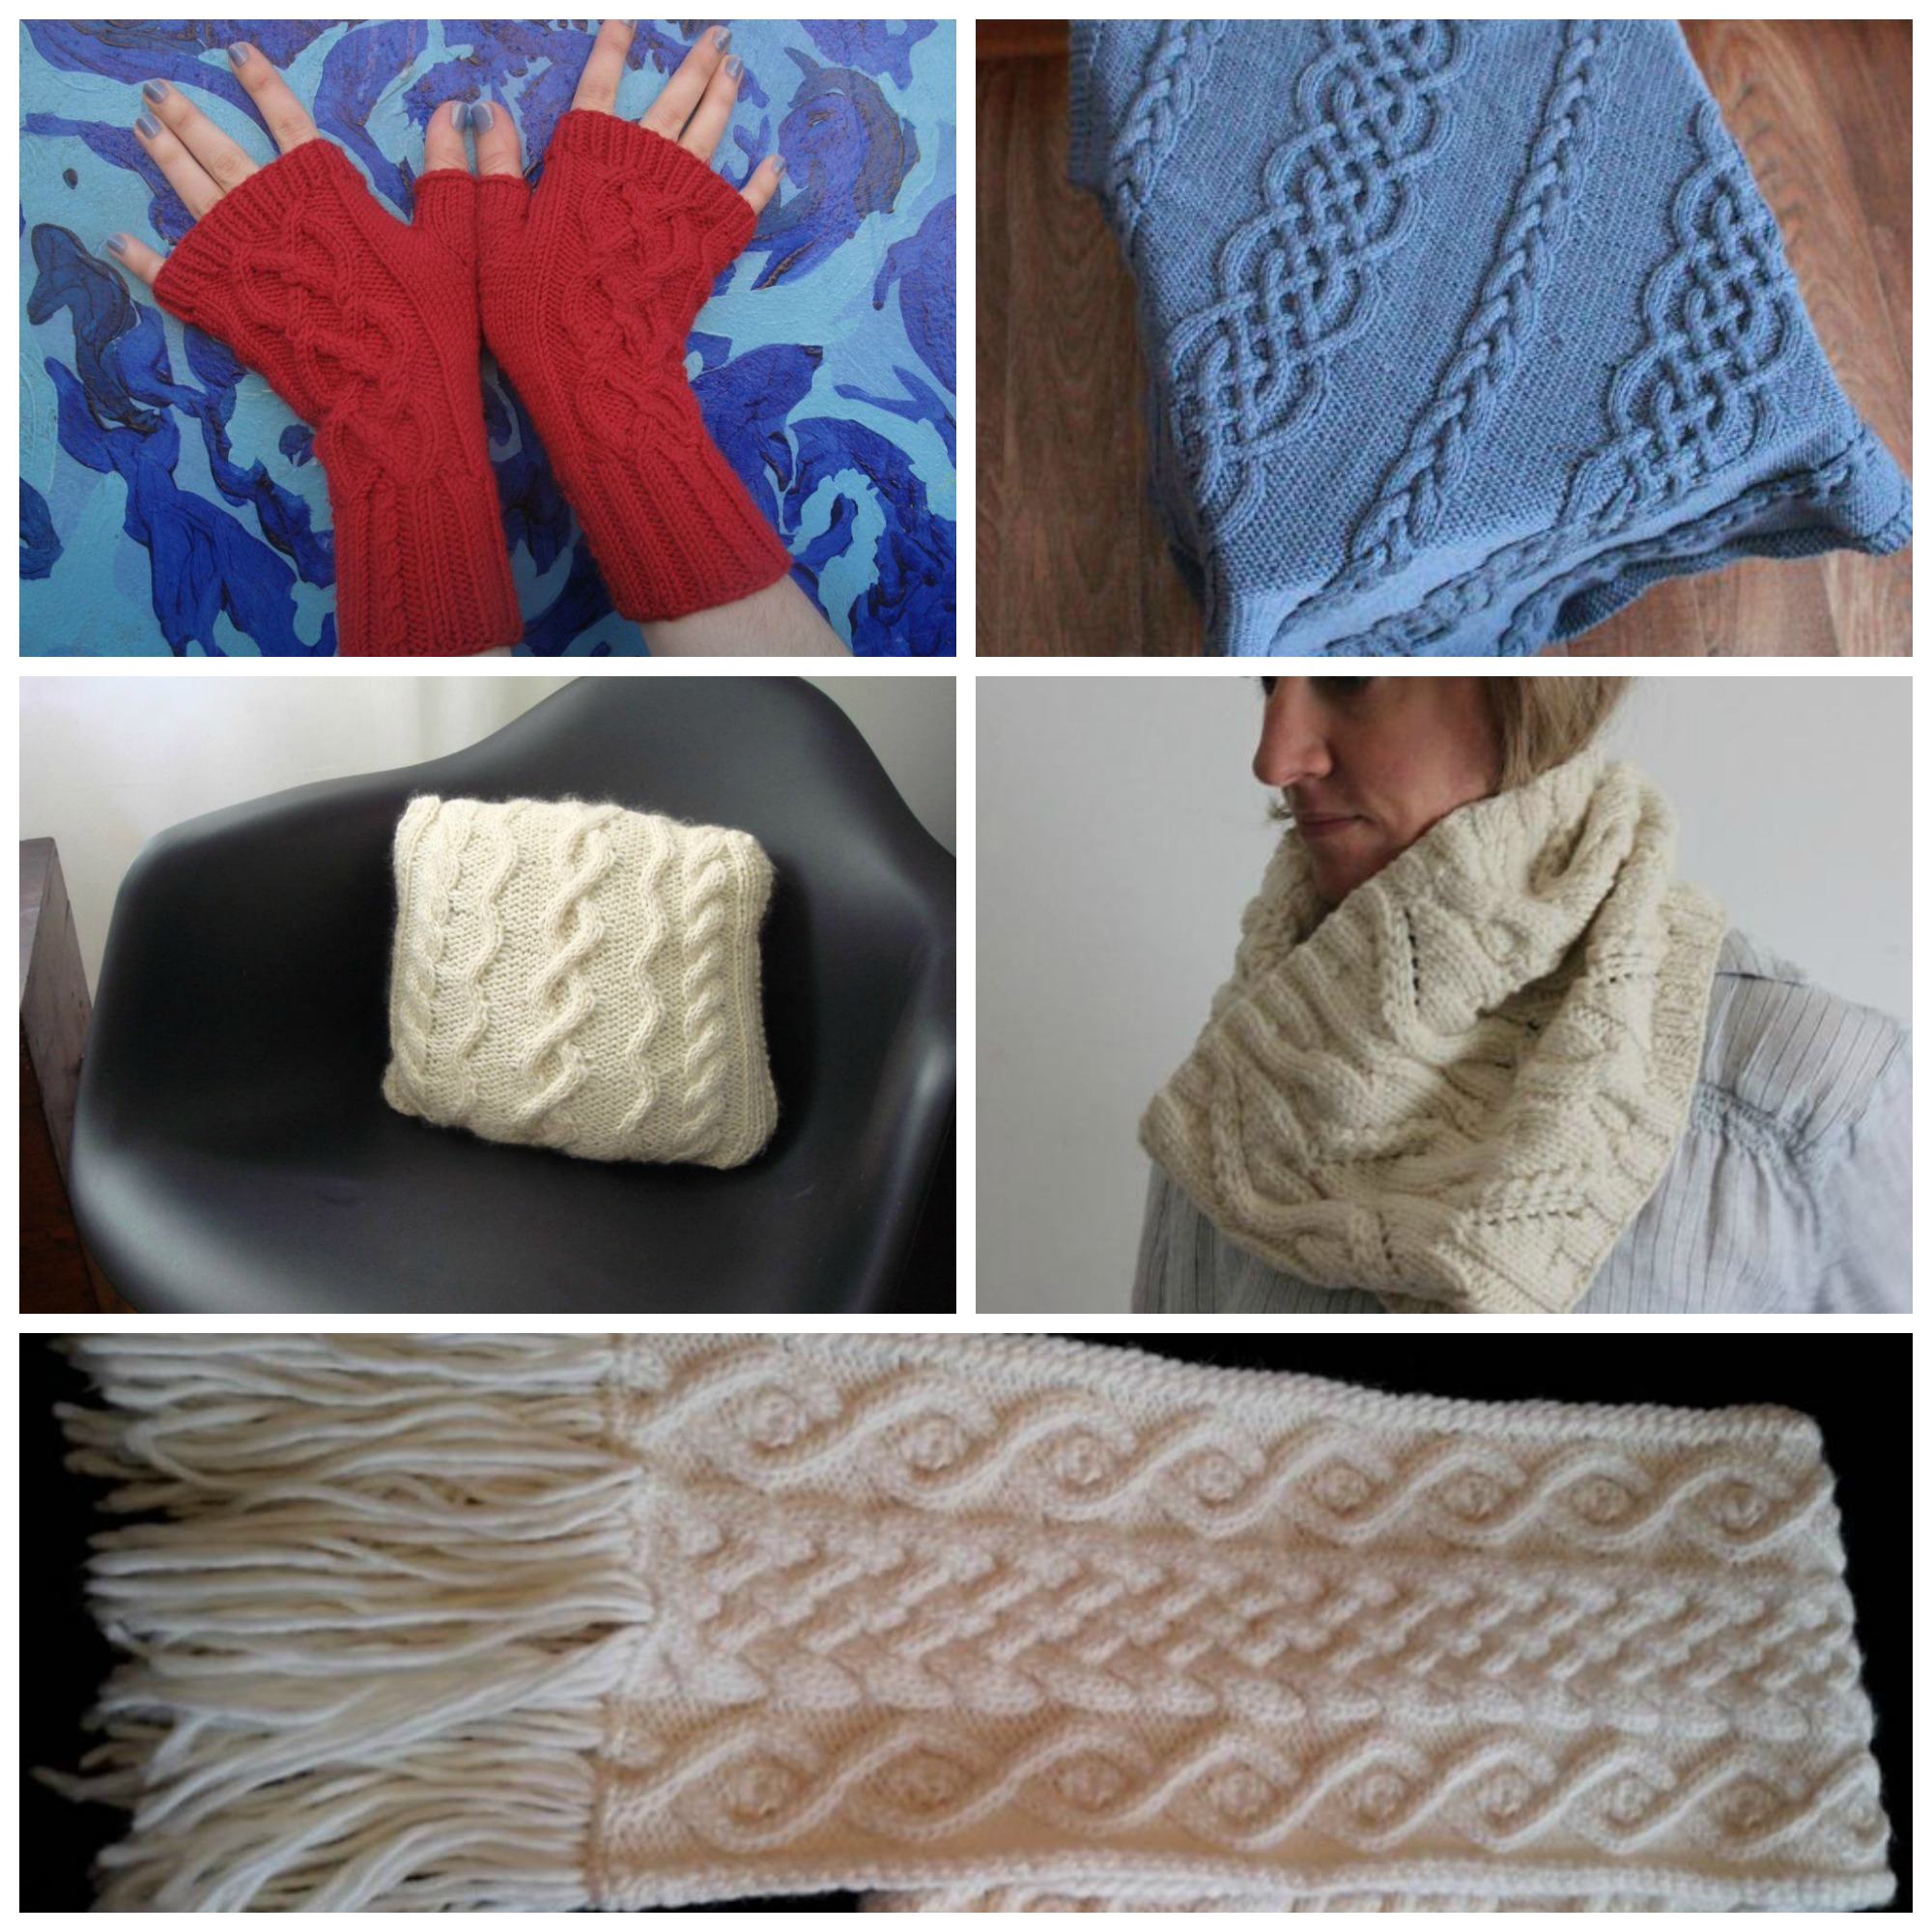 Aran Knitting Patterns Free 10 Free Aran Knitting Patterns On Craftsy